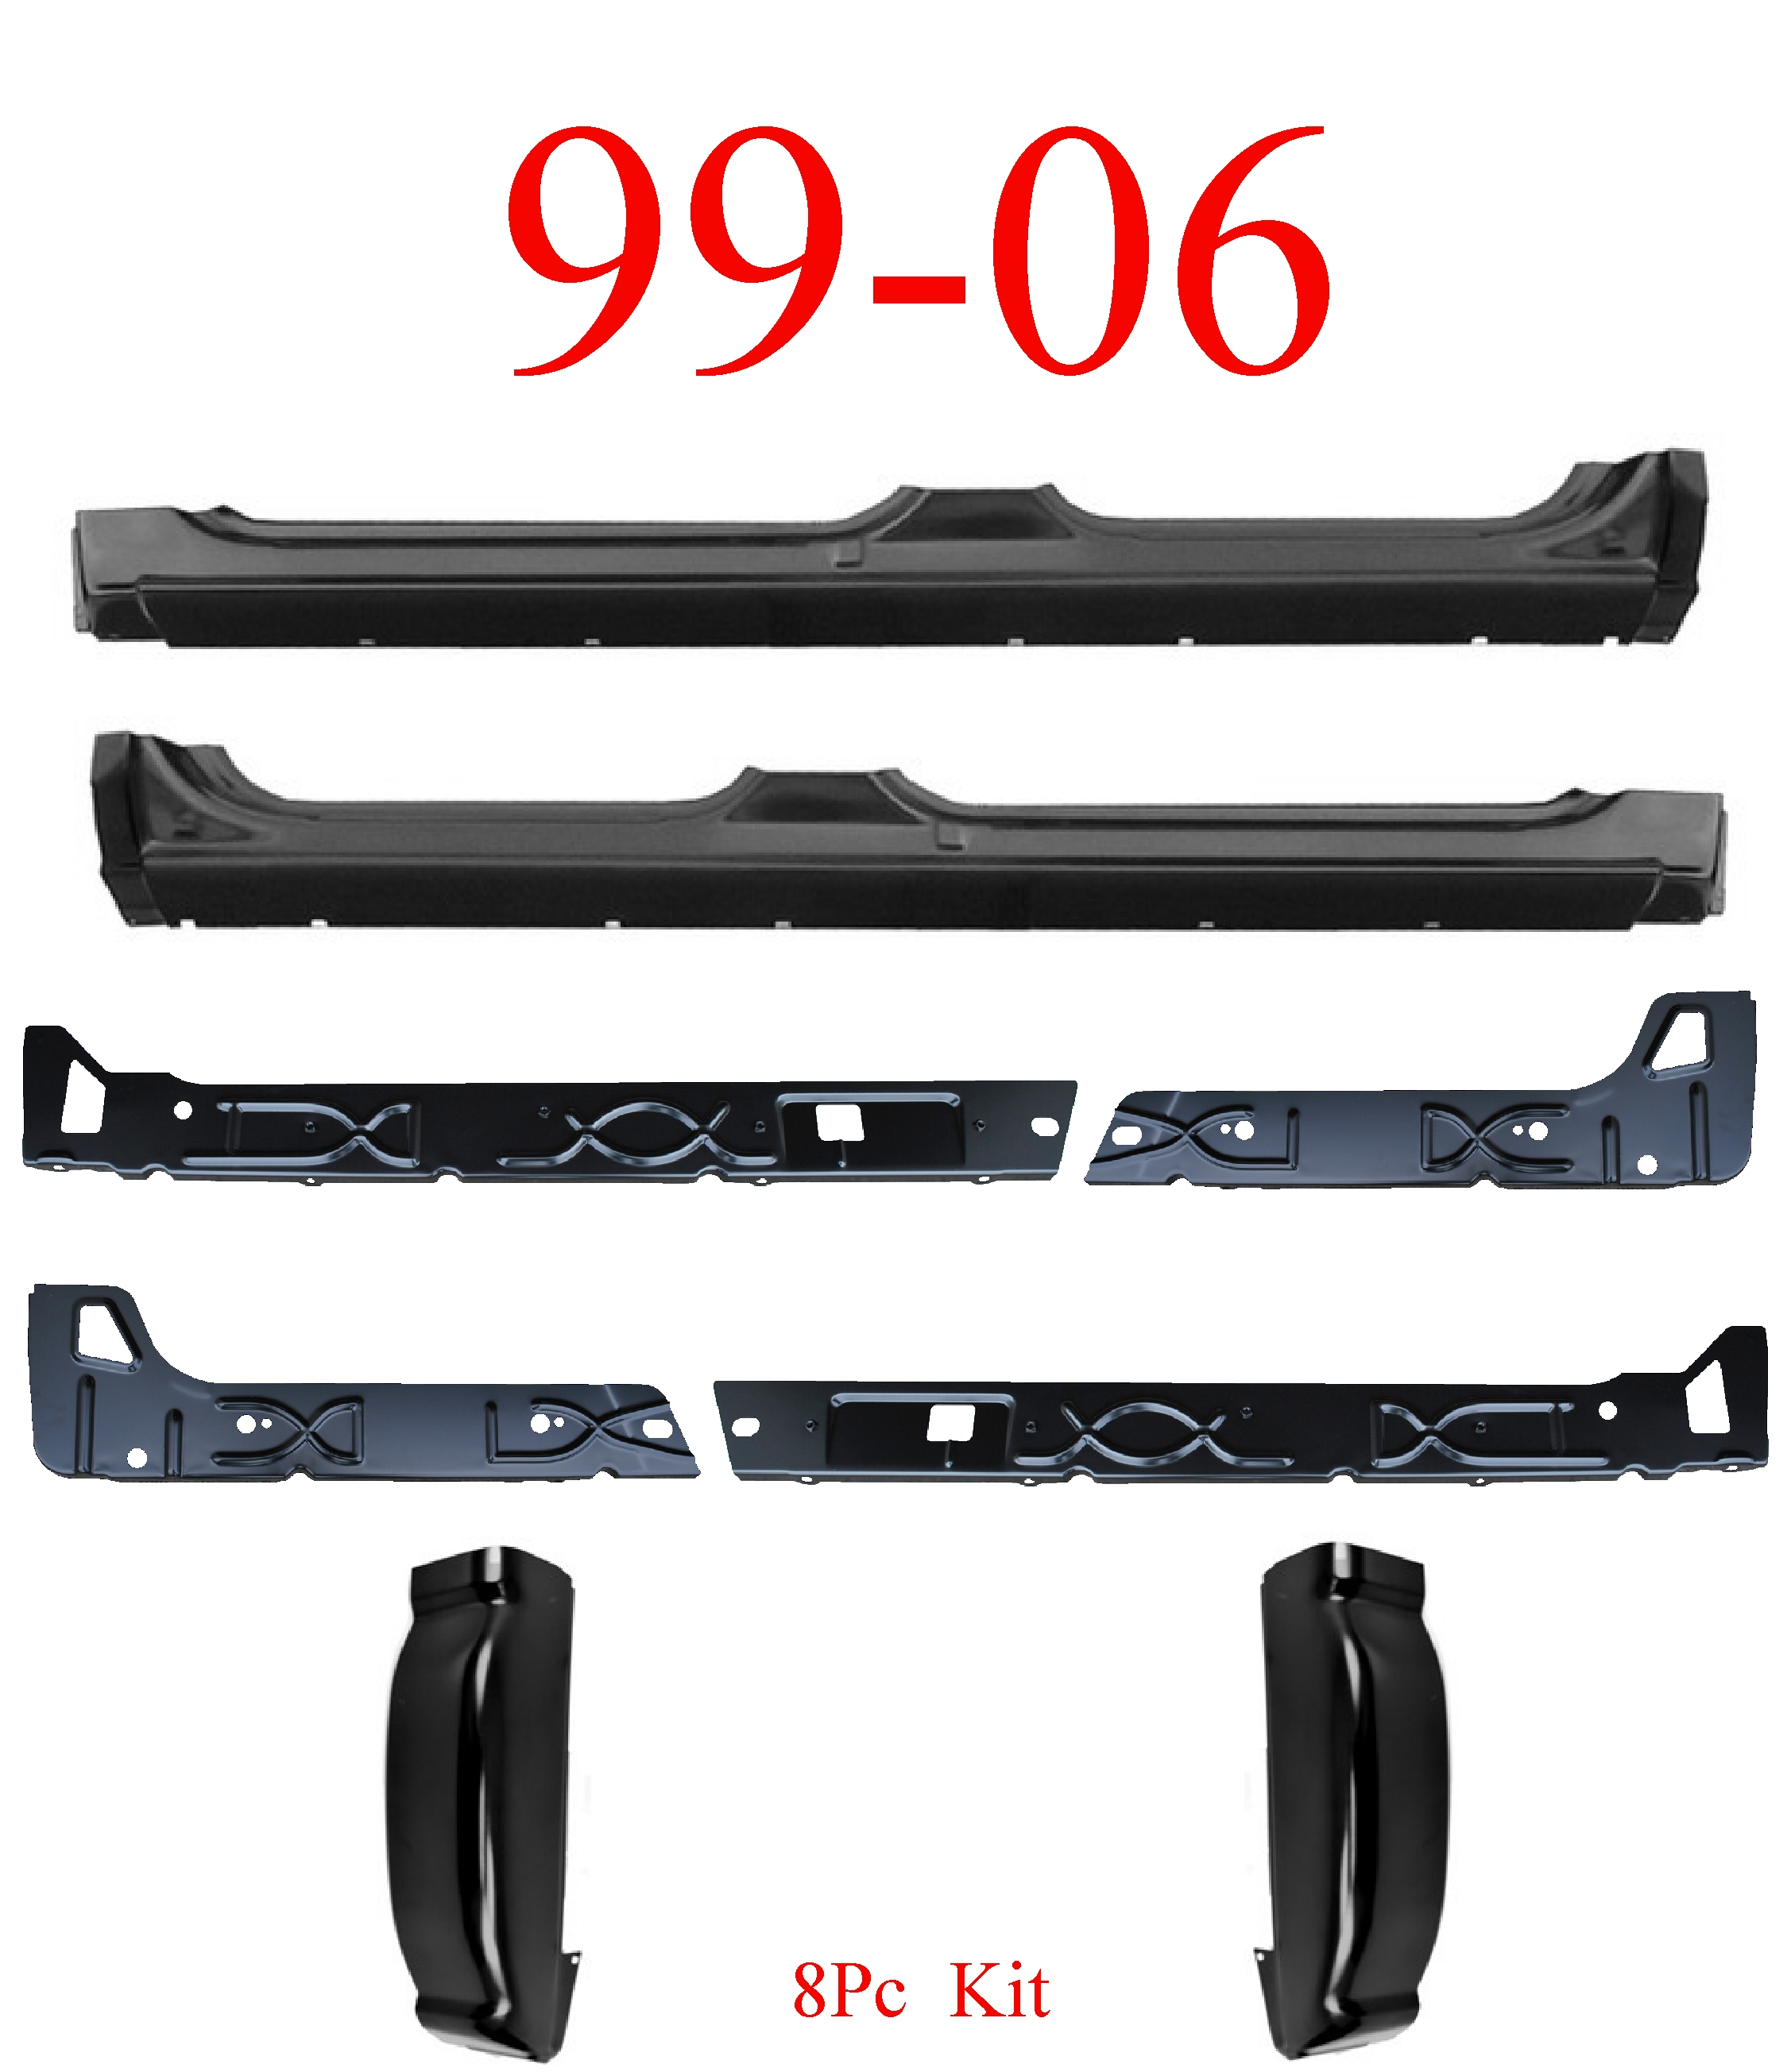 99-06 8Pc Extended Crew Cab Rockers, Inners & Cab Corners